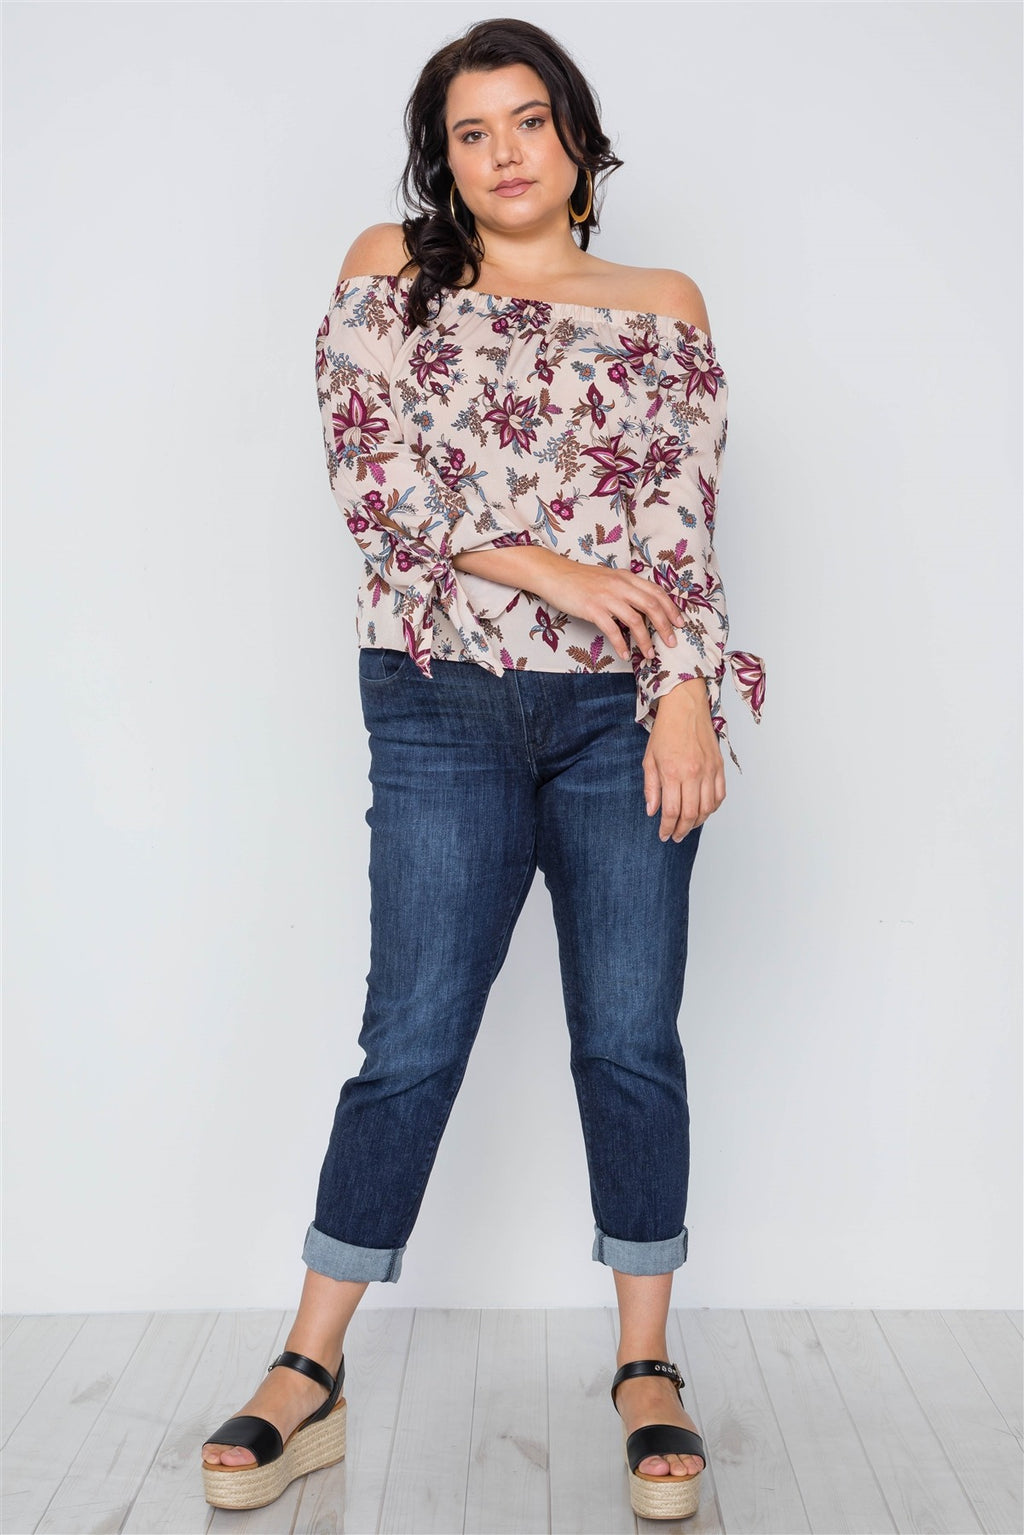 Plus Size Beigeoff-the-shoulder Floral Print Top